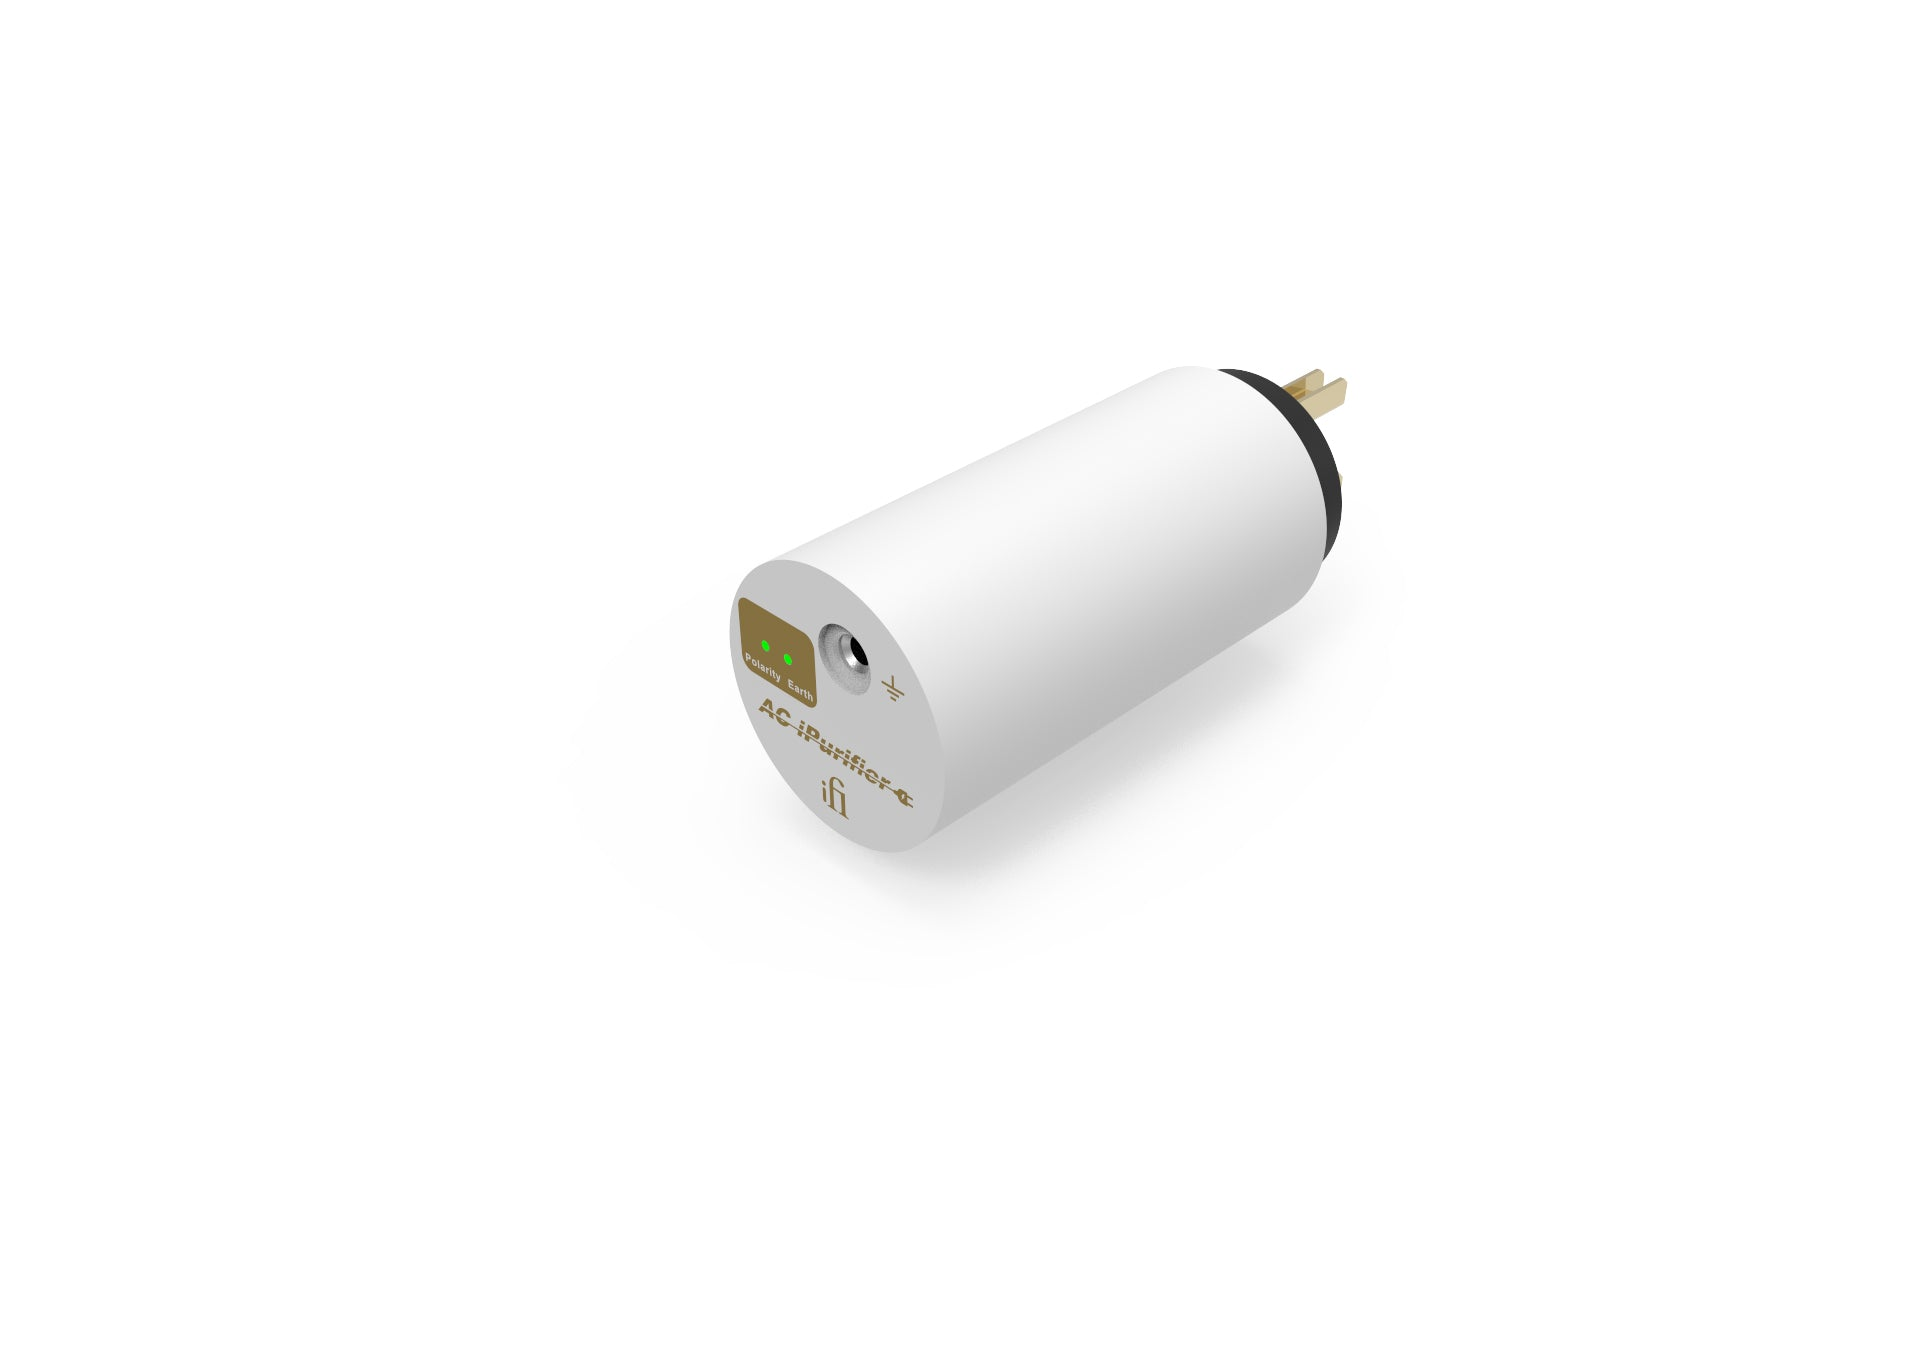 Ifi Ac Ipurifier Cleans Up Noisy Power To Audio Systems High Noise Filter For Stereo System